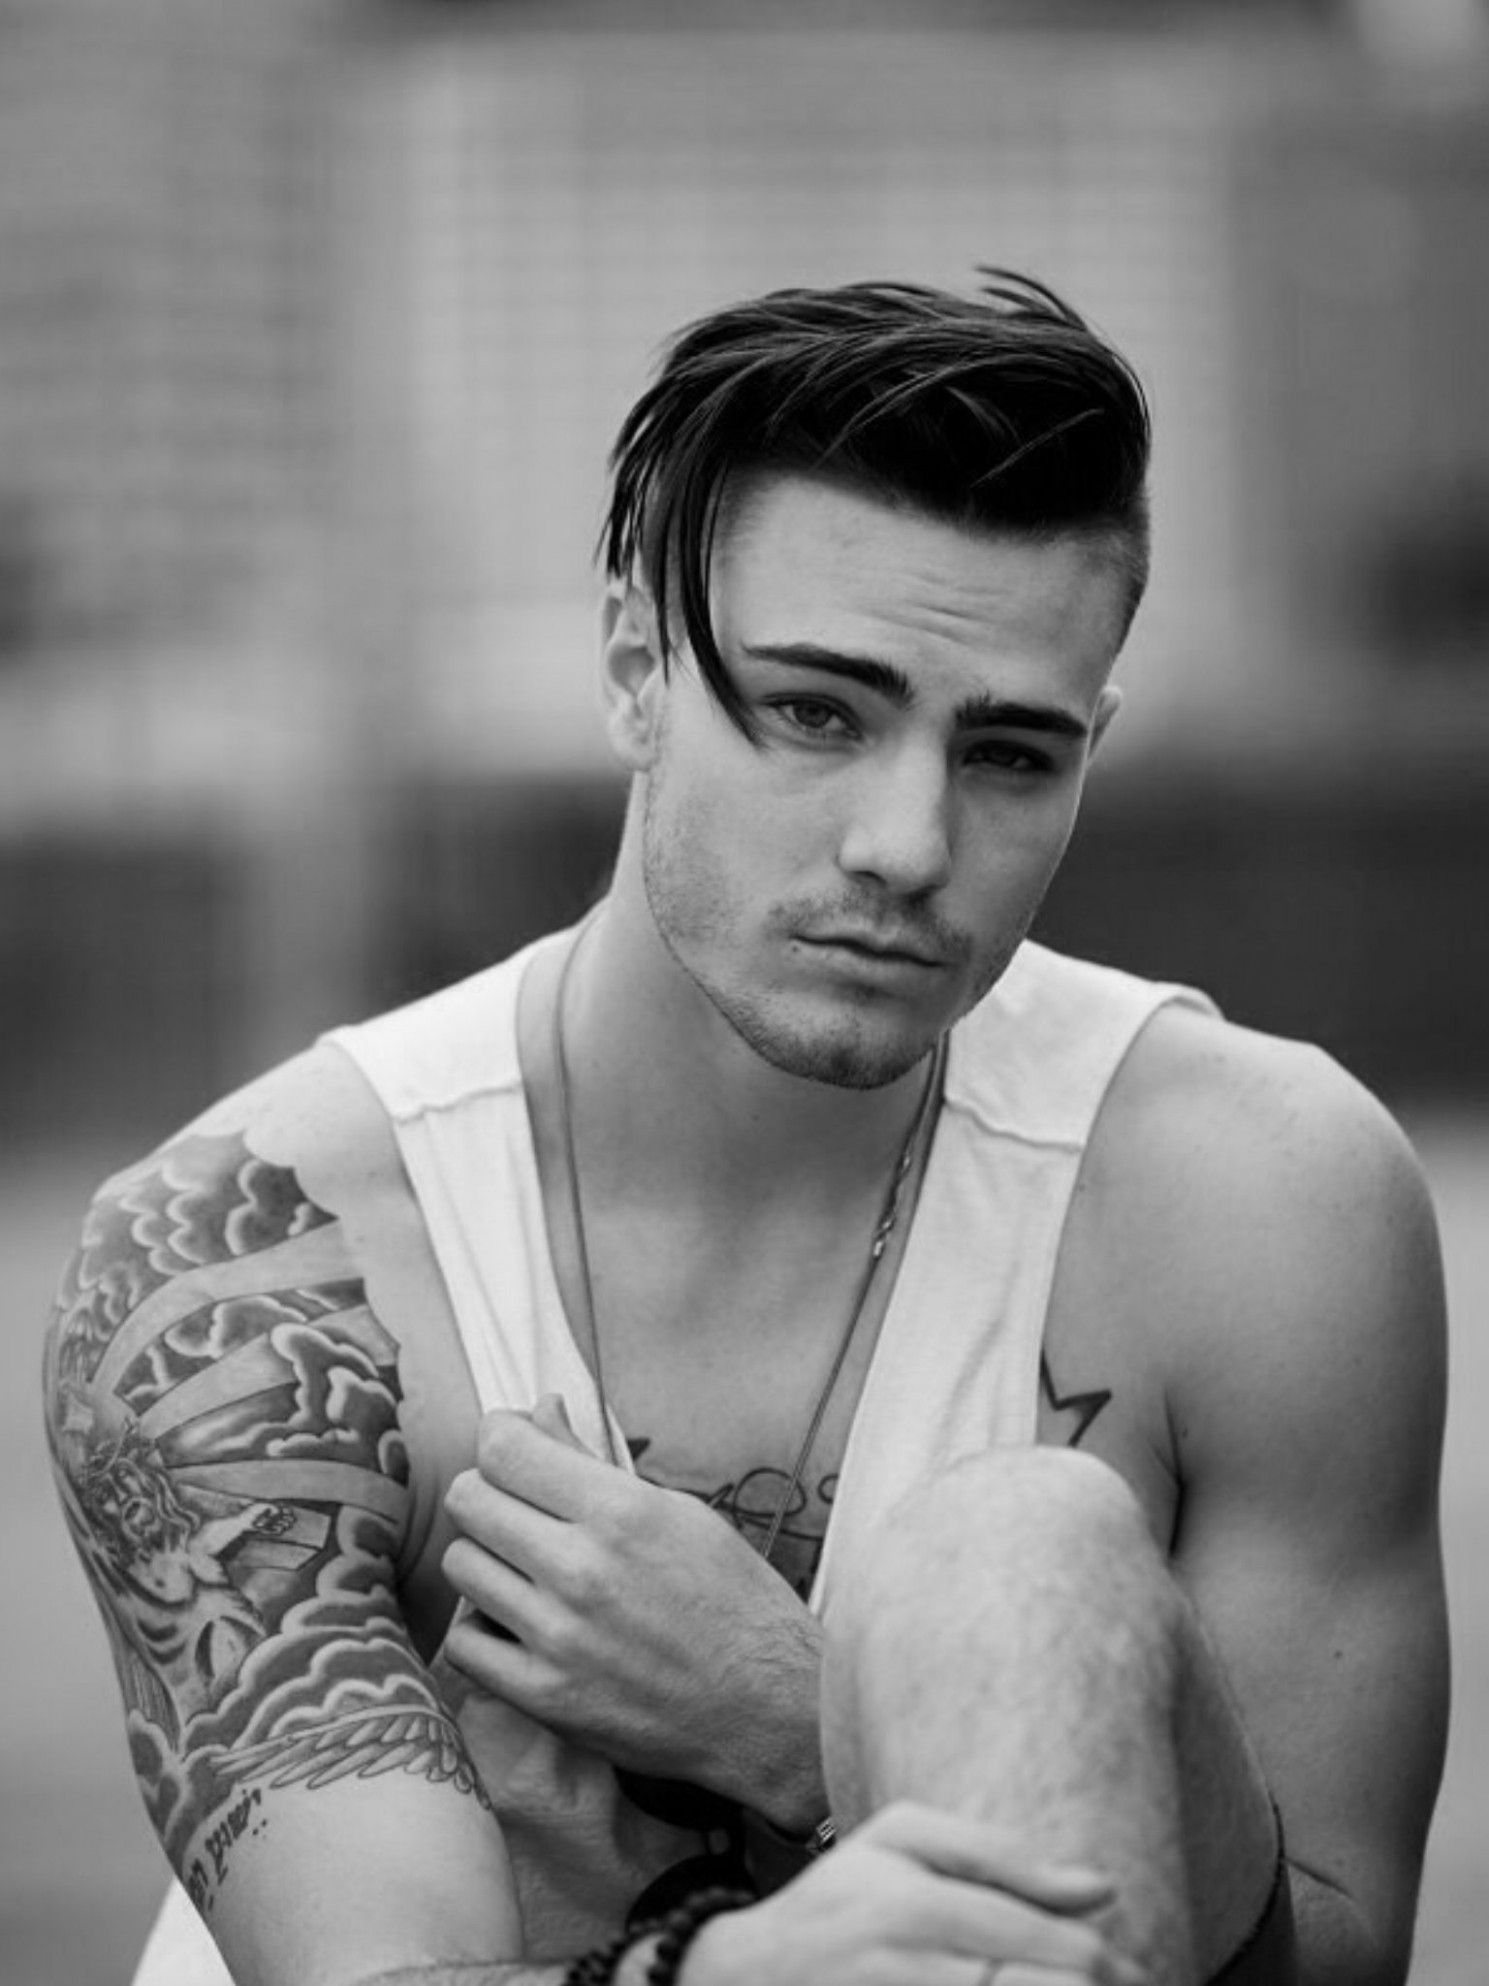 Pin By Lipper 10 On Haircuts Mens Hairstyles Fade, Hipster Mens Haircuts Long On Top Shaved Sides